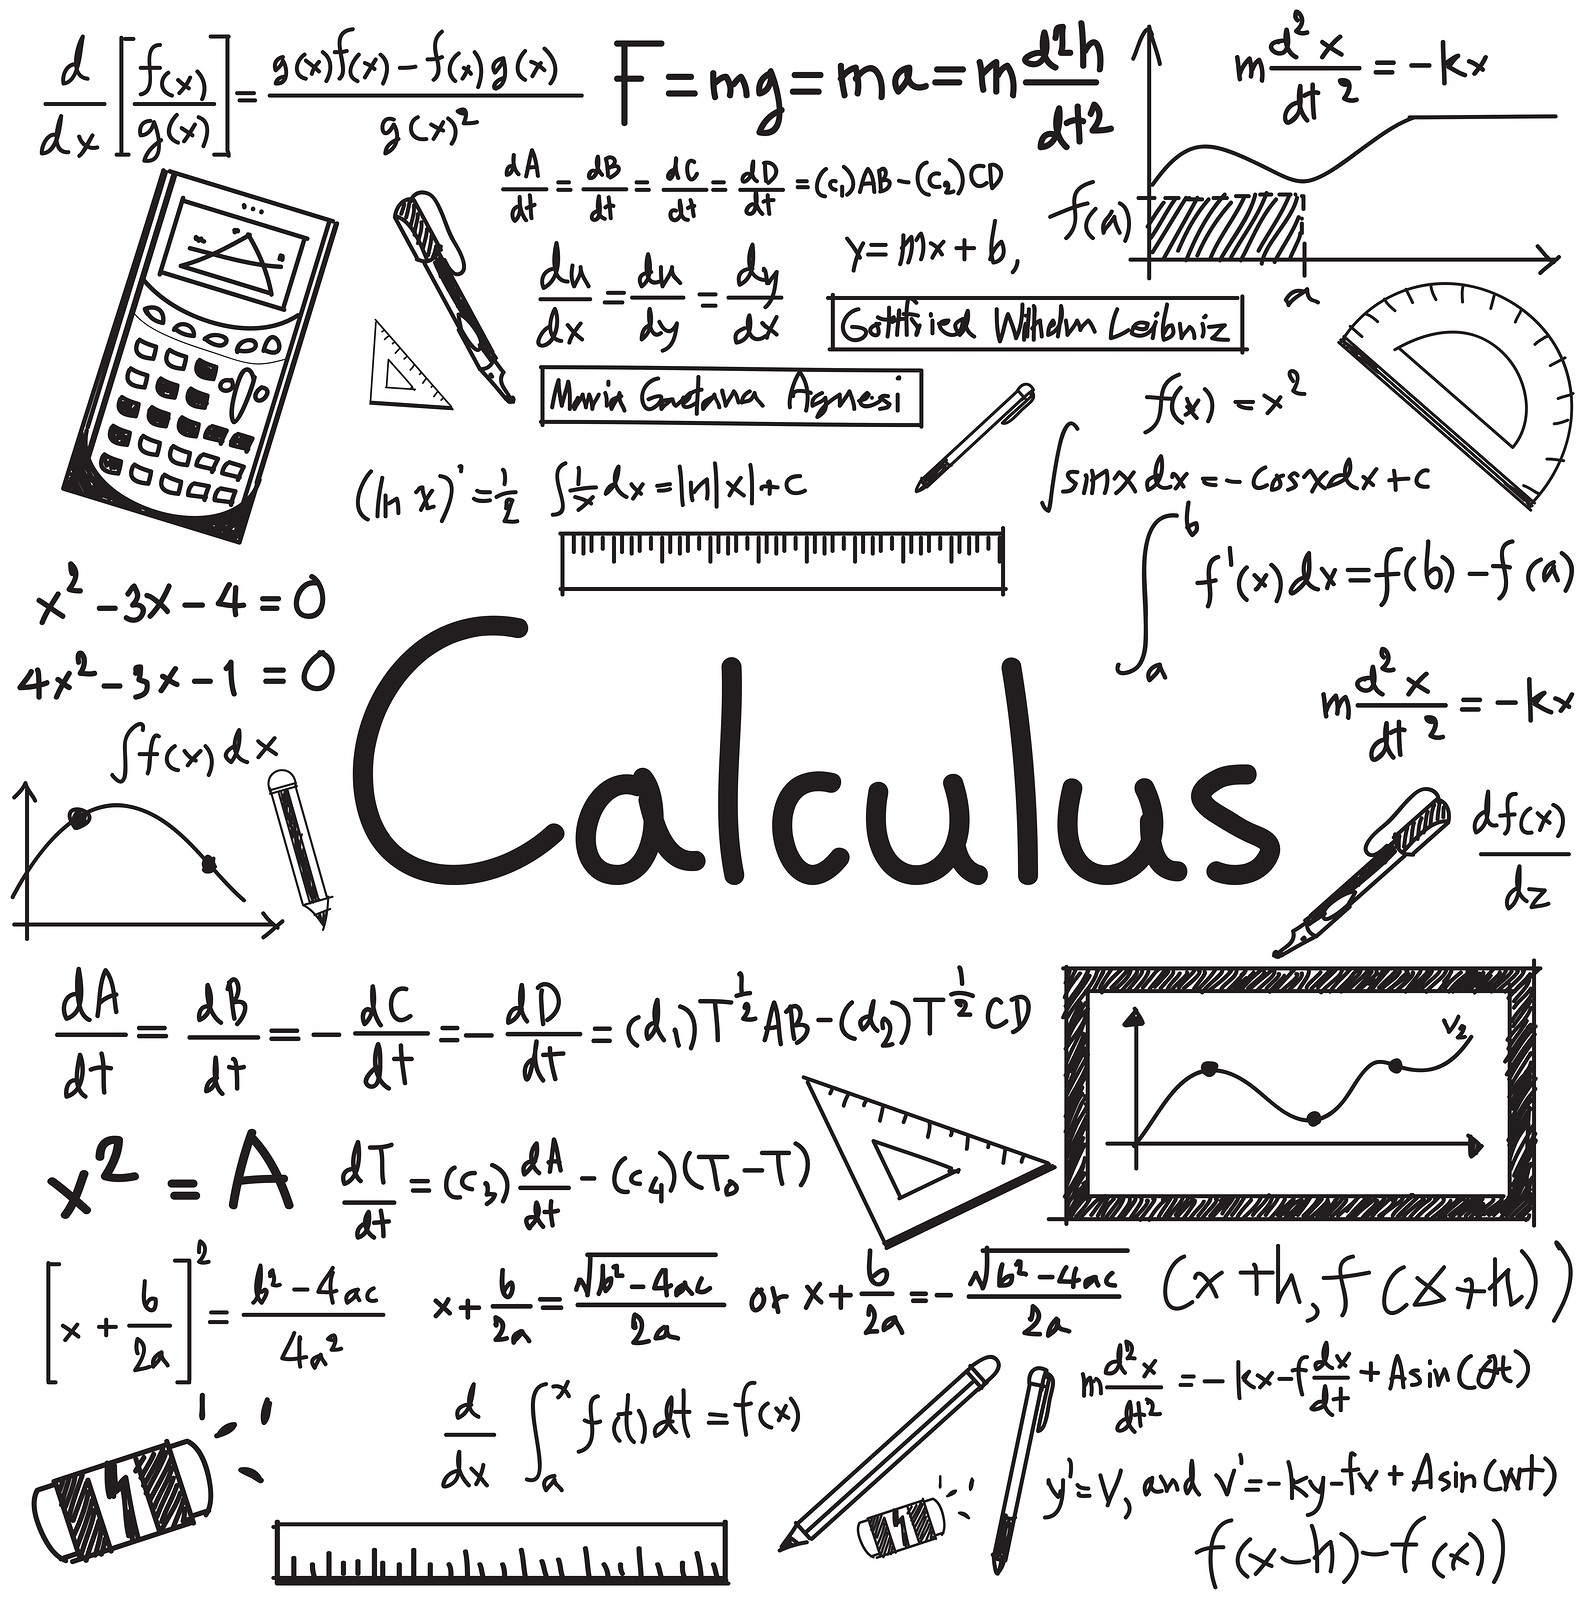 A look at equations used in calculus